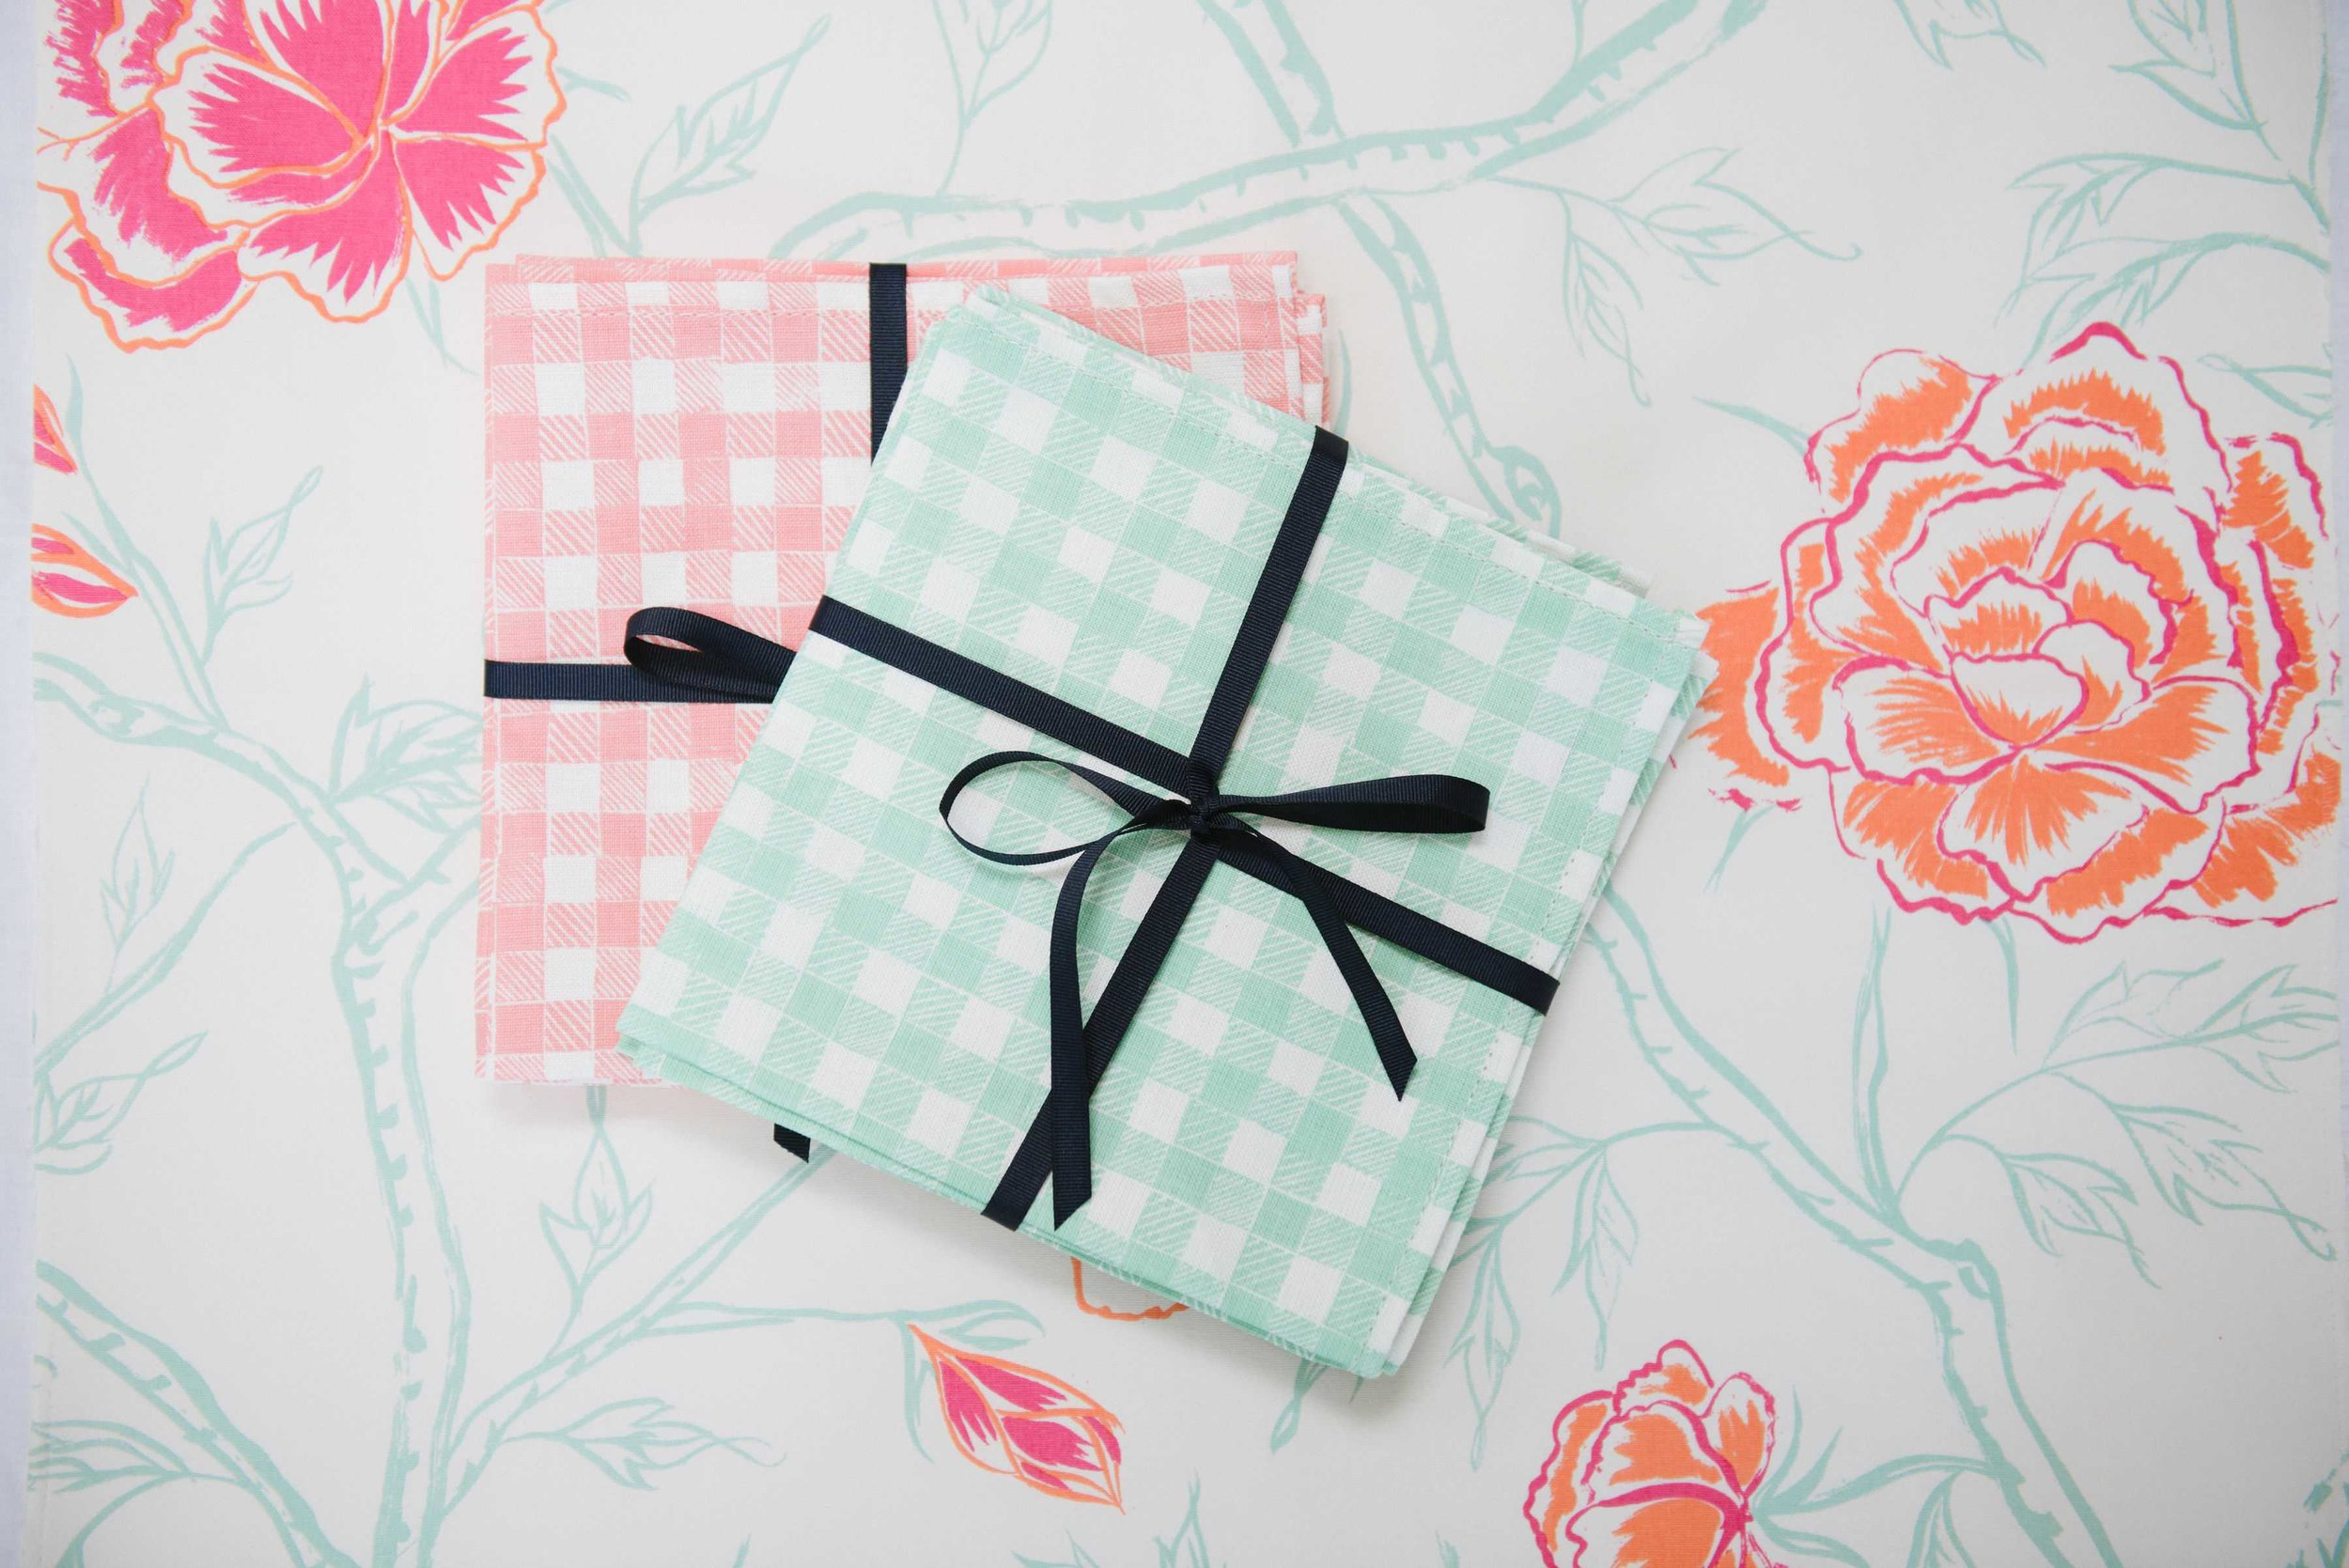 Block Print Gingham napkins in Green + Pink, Photo by Emily Young